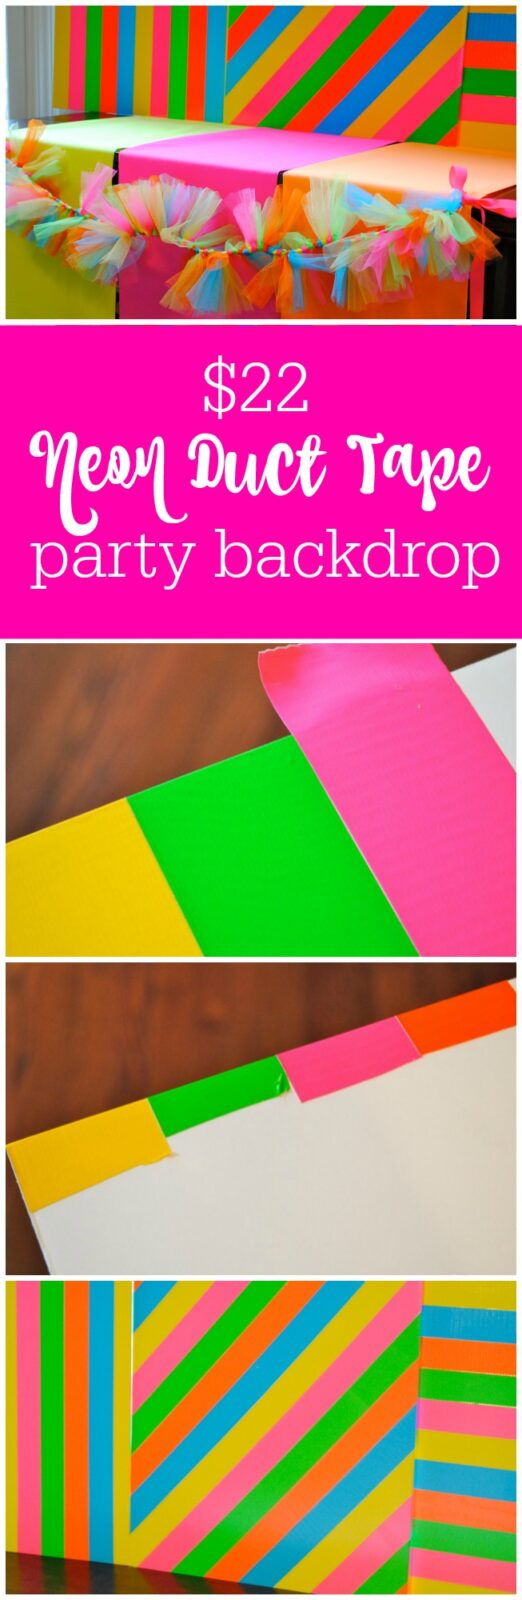 $22 neon duct tape party backdrop by The Party Teacher